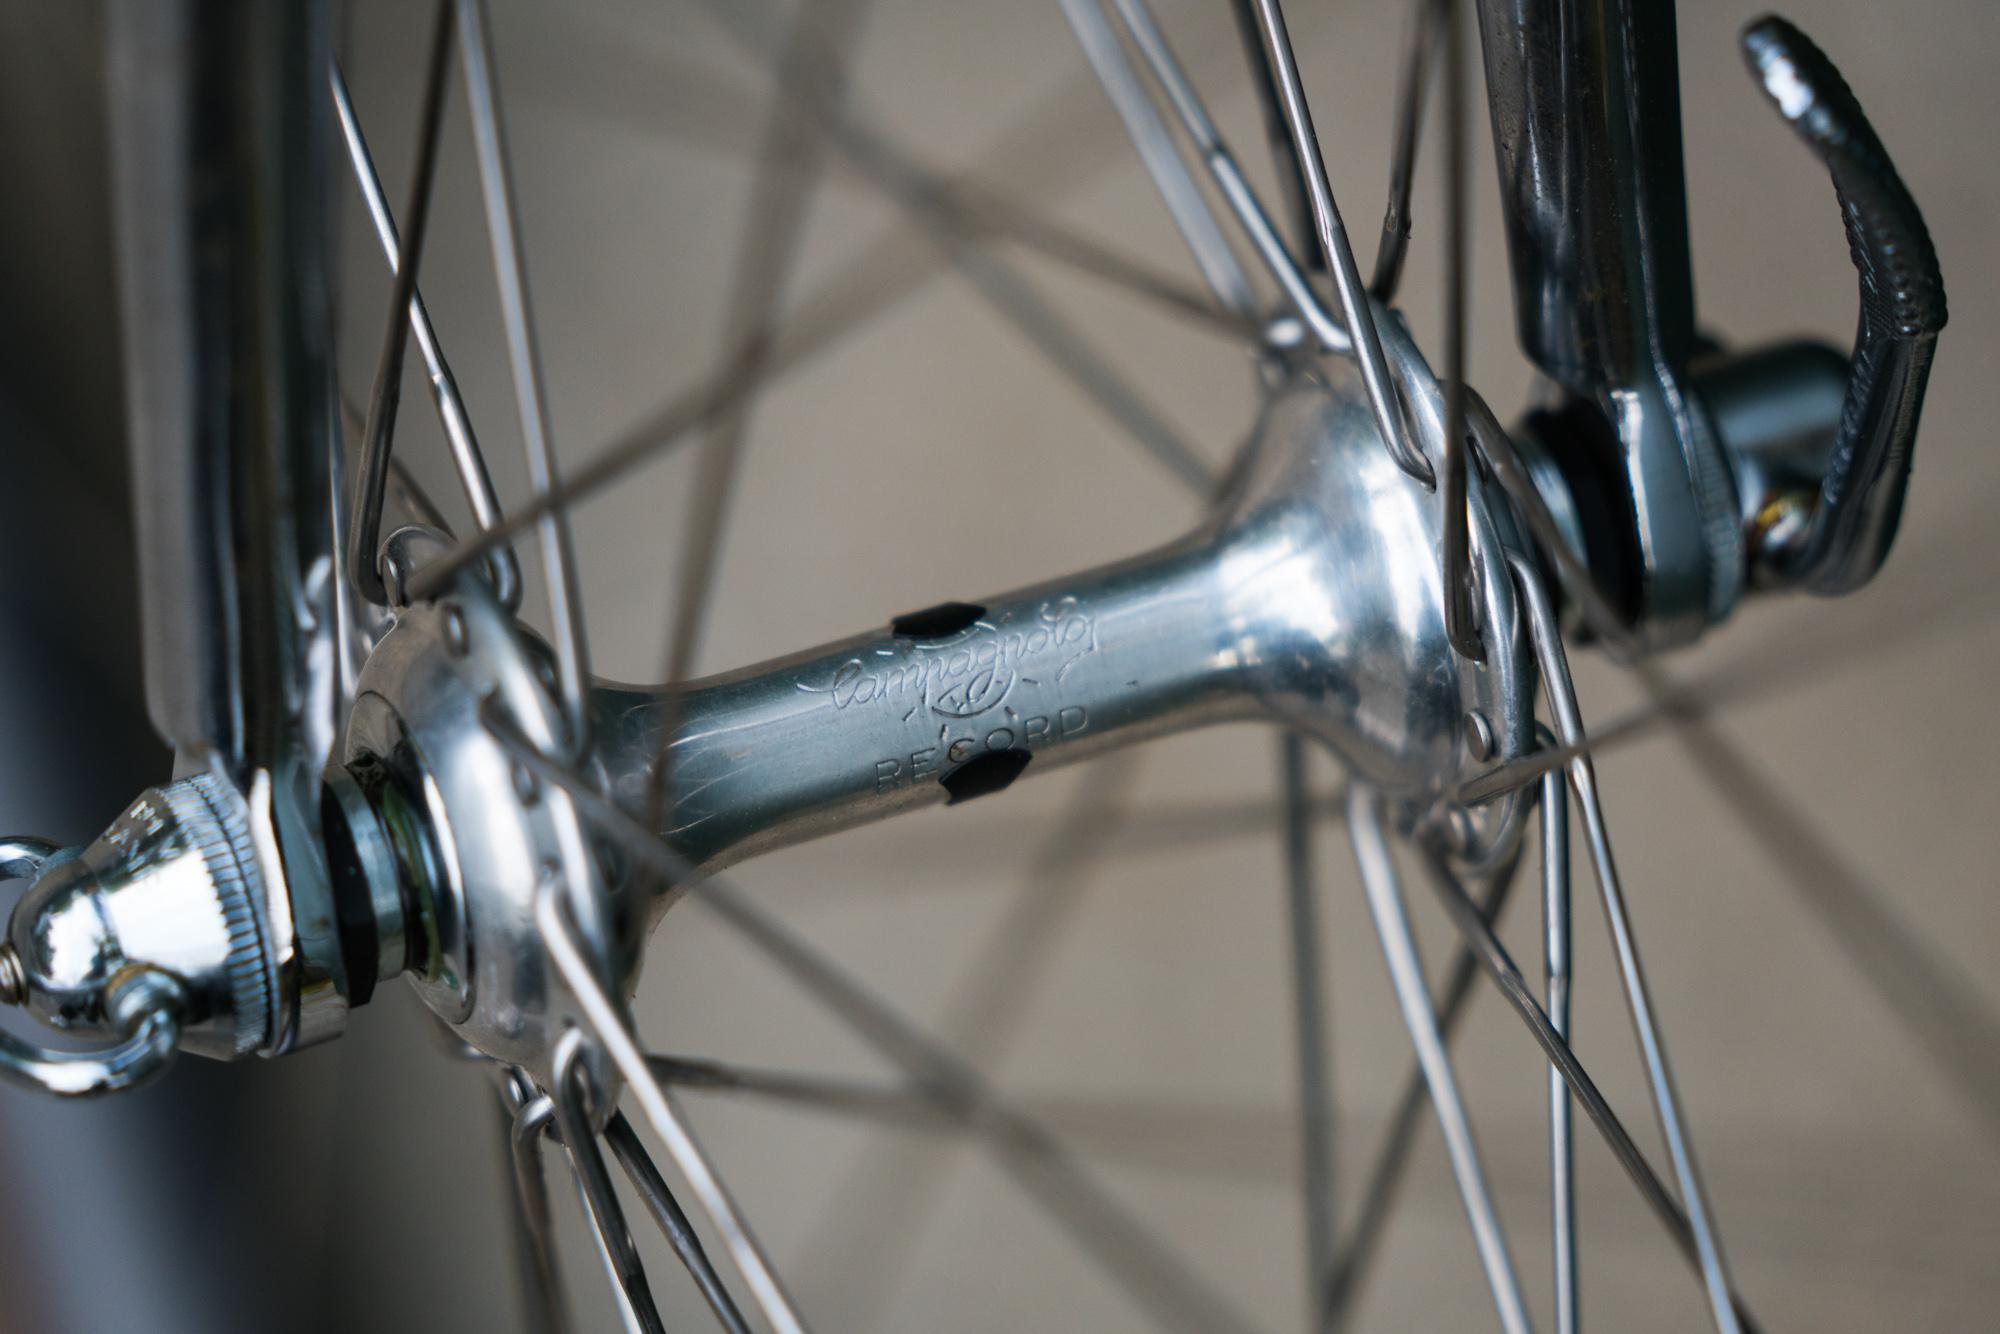 Johns Cool Colnago Coolnago (16 of 27)